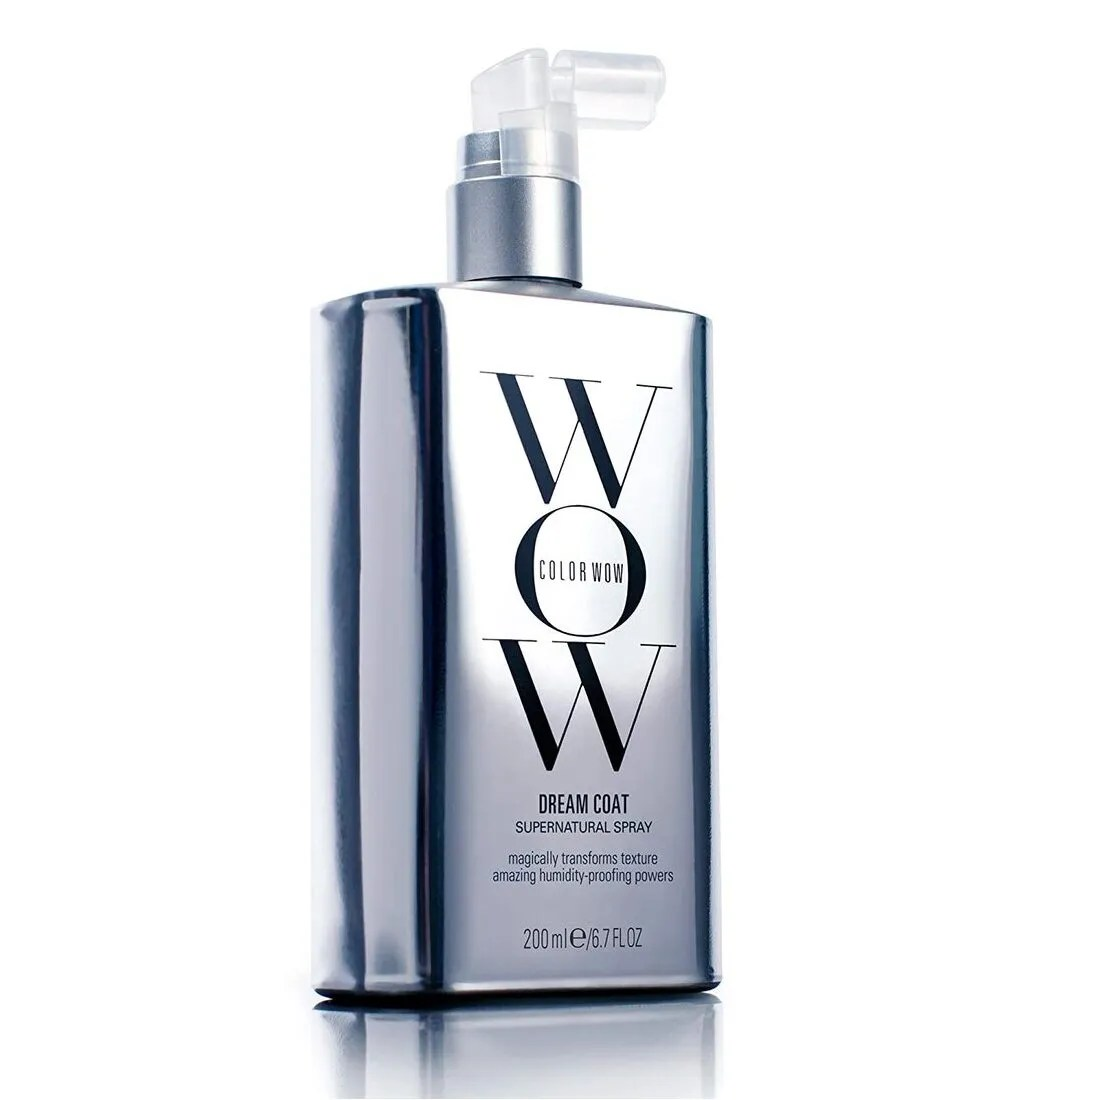 Color Wow Dream Coat Supernatural Spray on white background